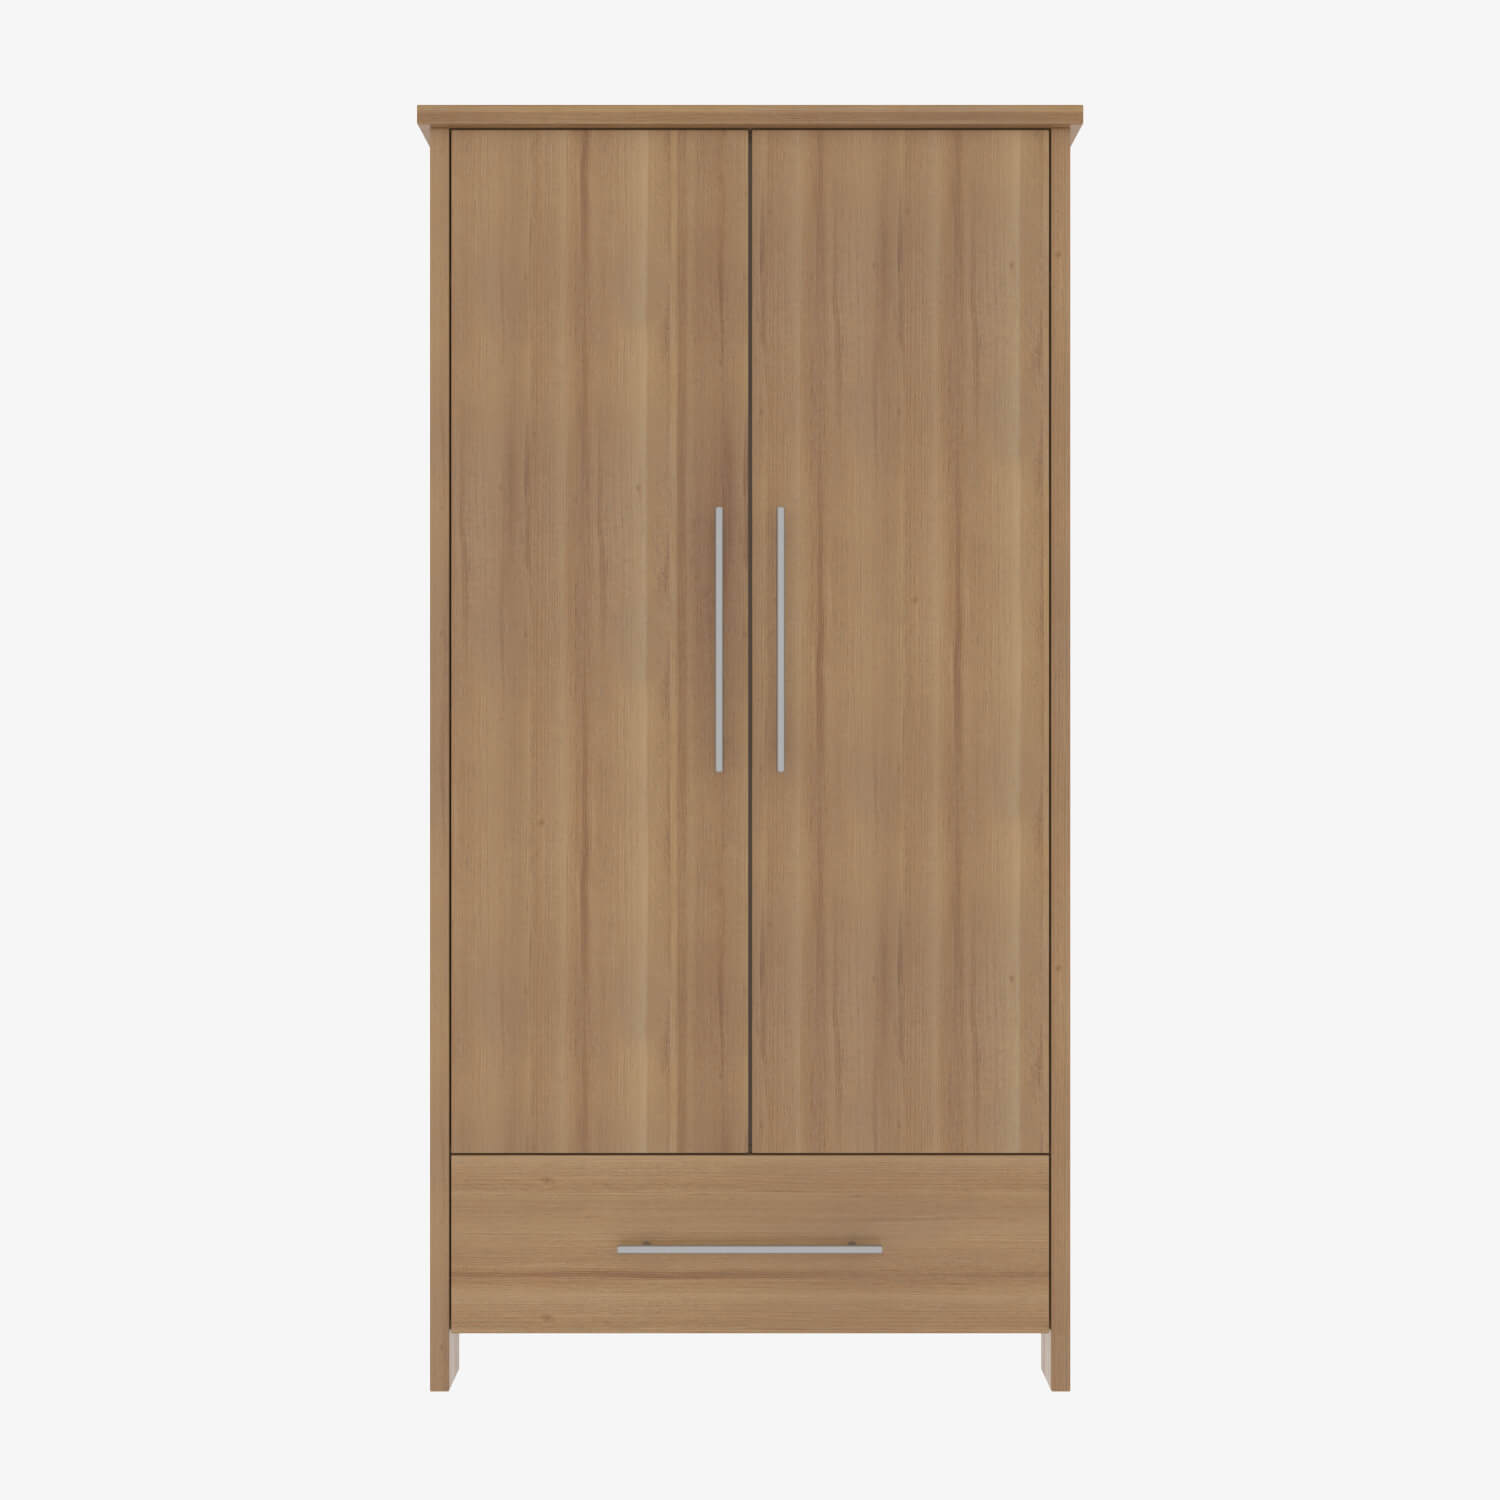 Oakland 2-Door Wardrobe